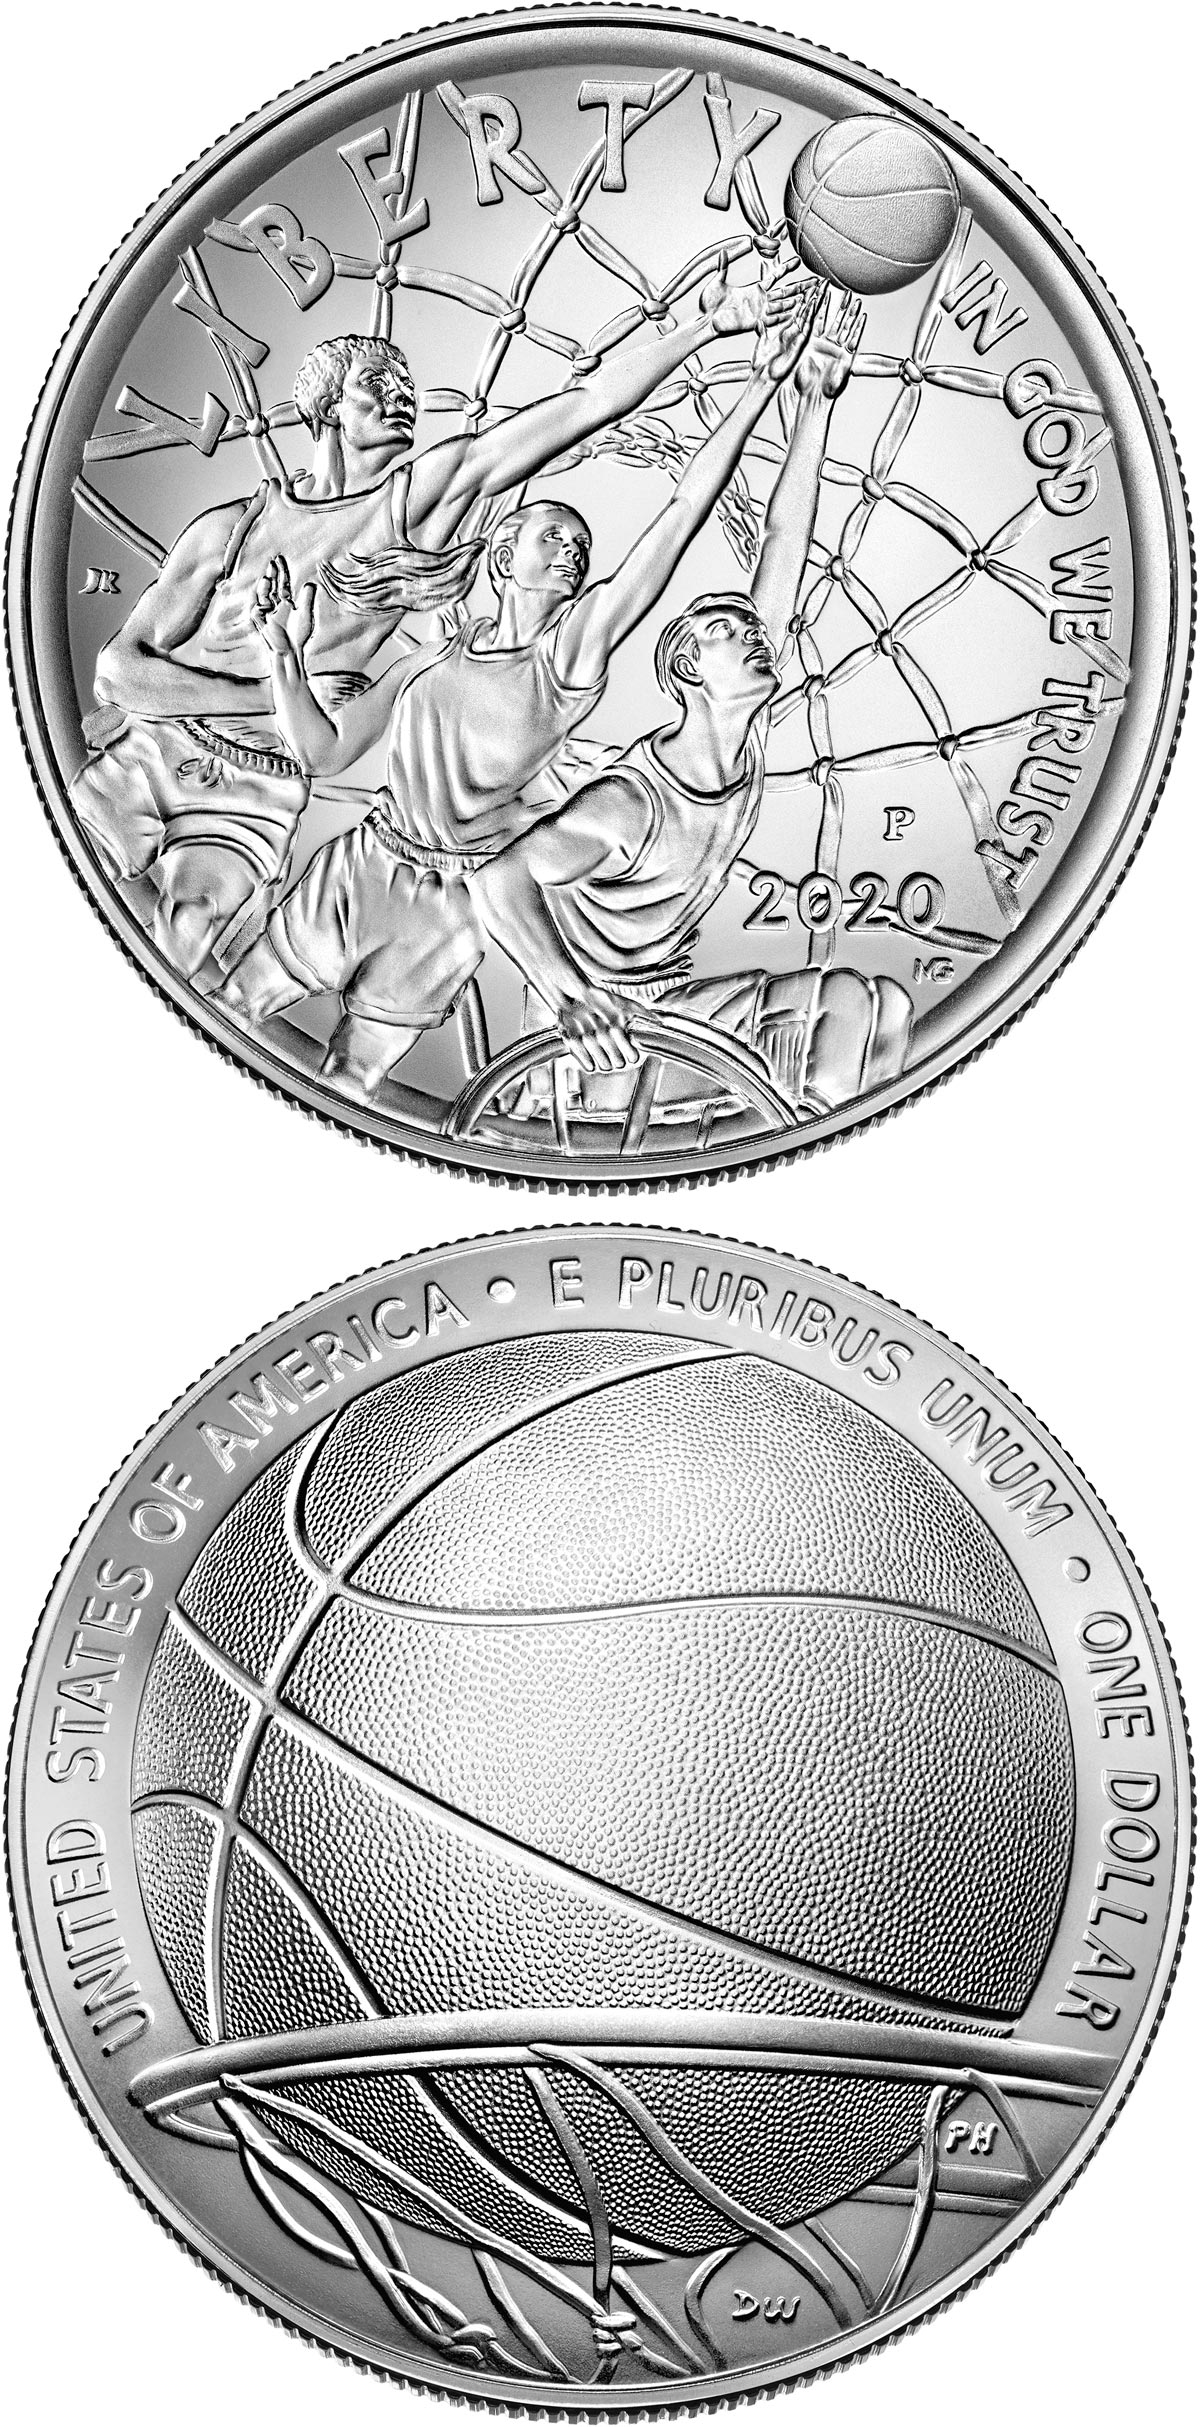 Image of 1 dollar coin - Basketball Hall of Fame | USA 2020.  The Silver coin is of Proof, BU quality.